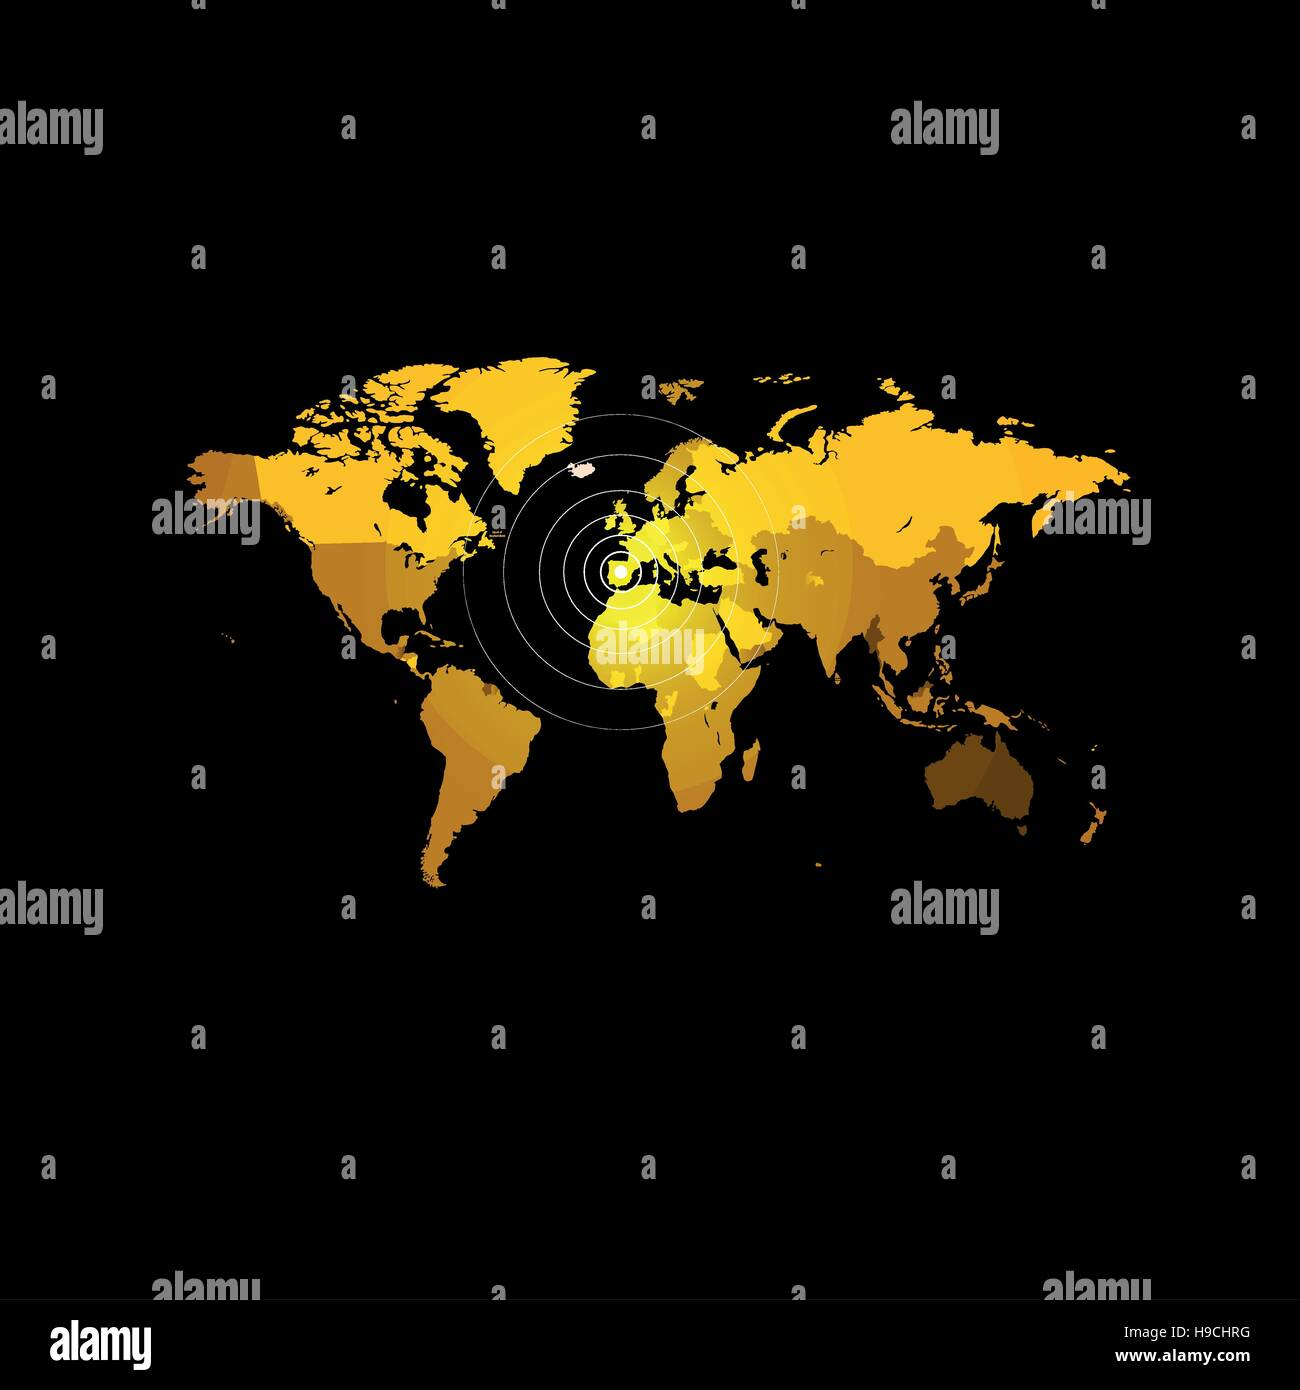 Orange color world map on black background globe design backdrop orange color world map on black background globe design backdrop cartography element wallpaper geographic locations image continents vector illustration gumiabroncs Choice Image